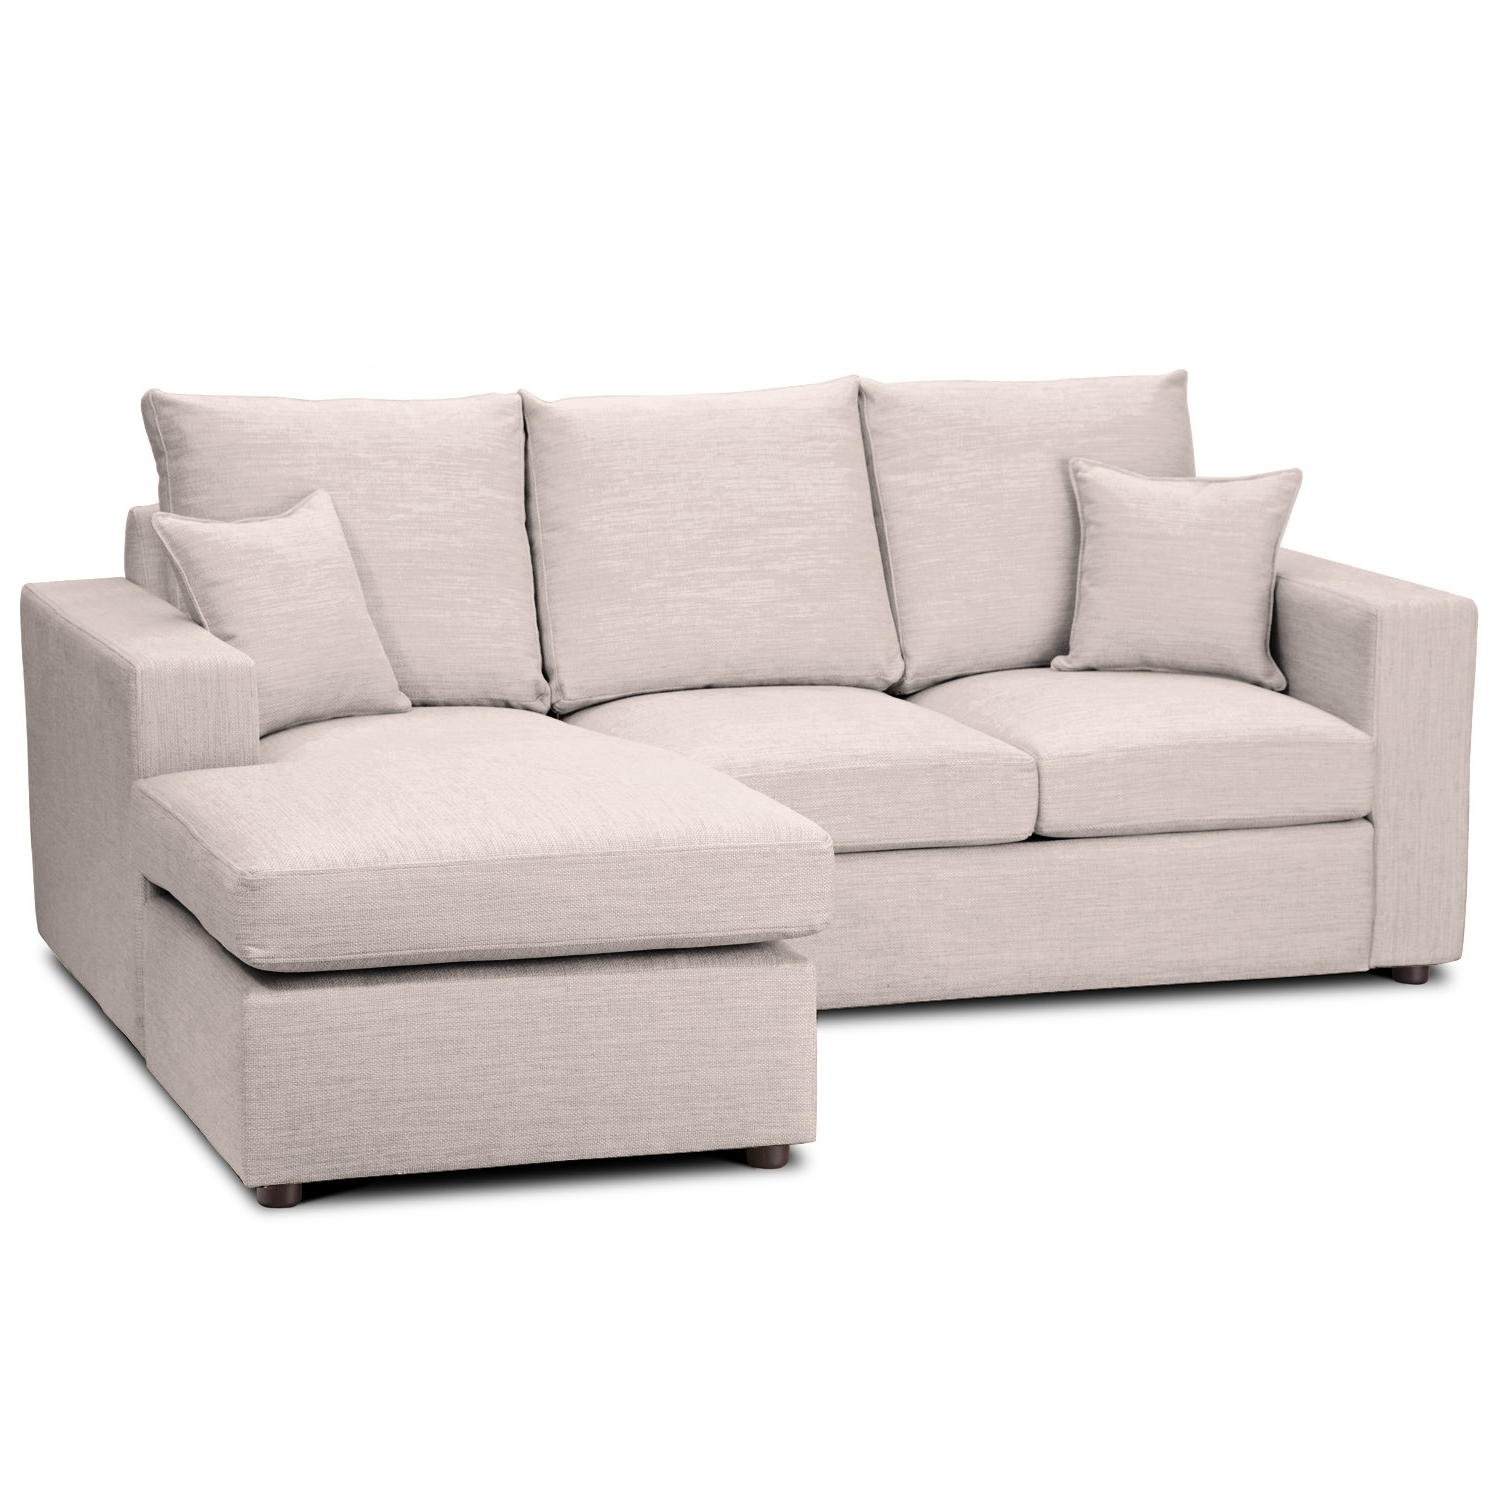 Corner Sofa Bed Chaise (View 5 of 15)